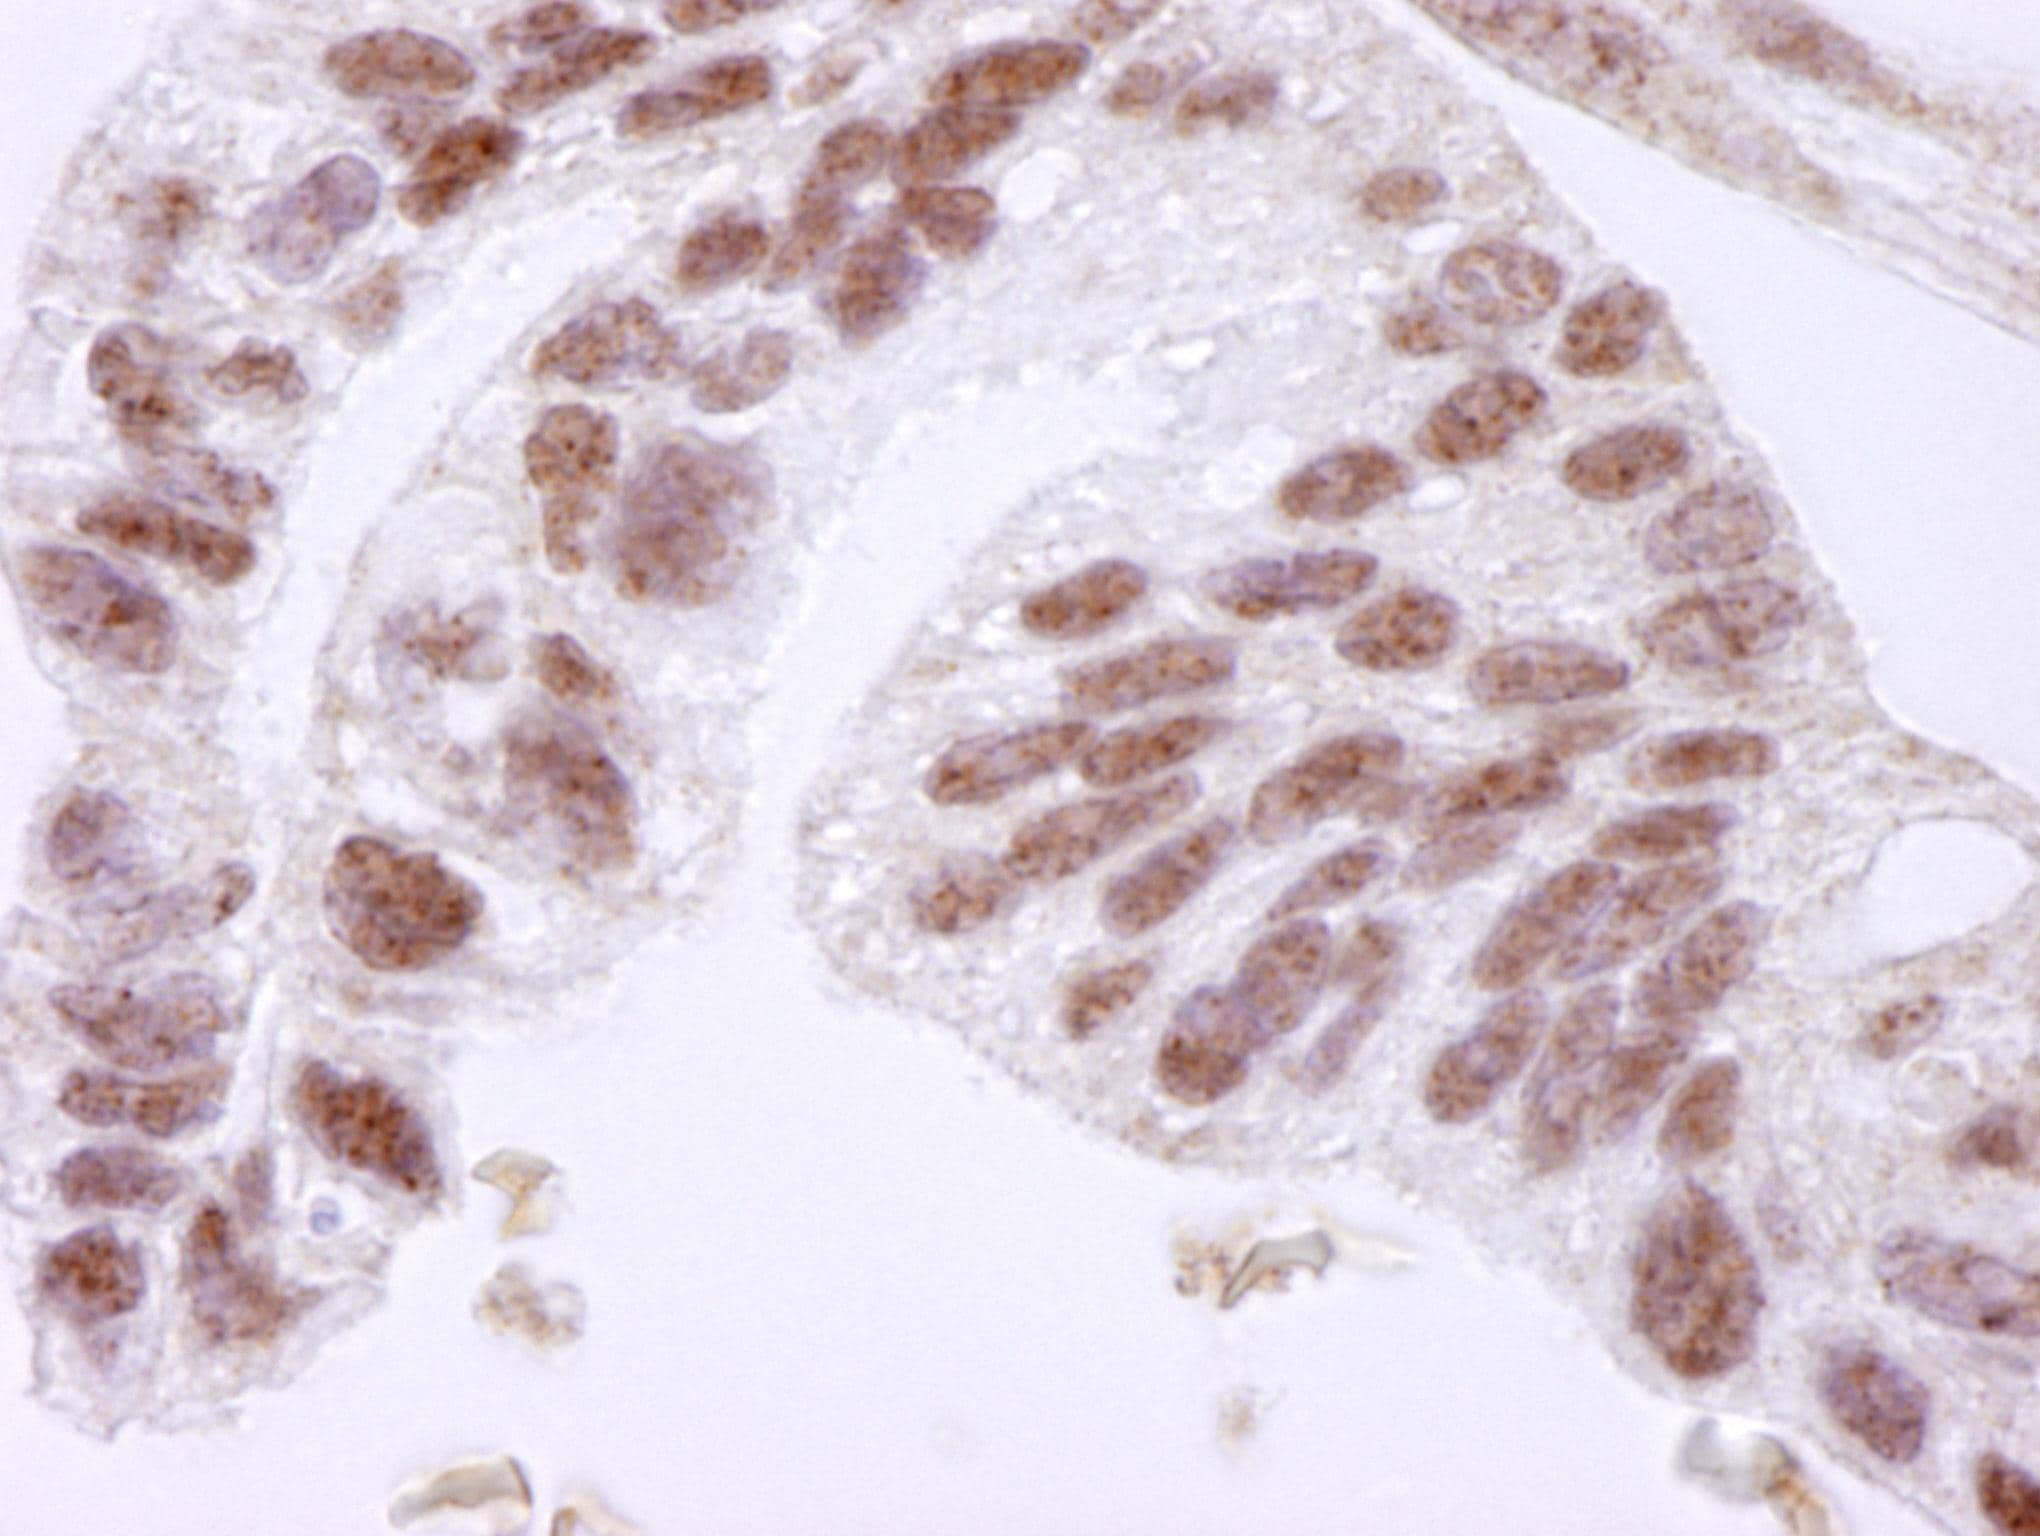 Immunohistochemistry (Formalin/PFA-fixed paraffin-embedded sections) - CTCF antibody (ab84372)